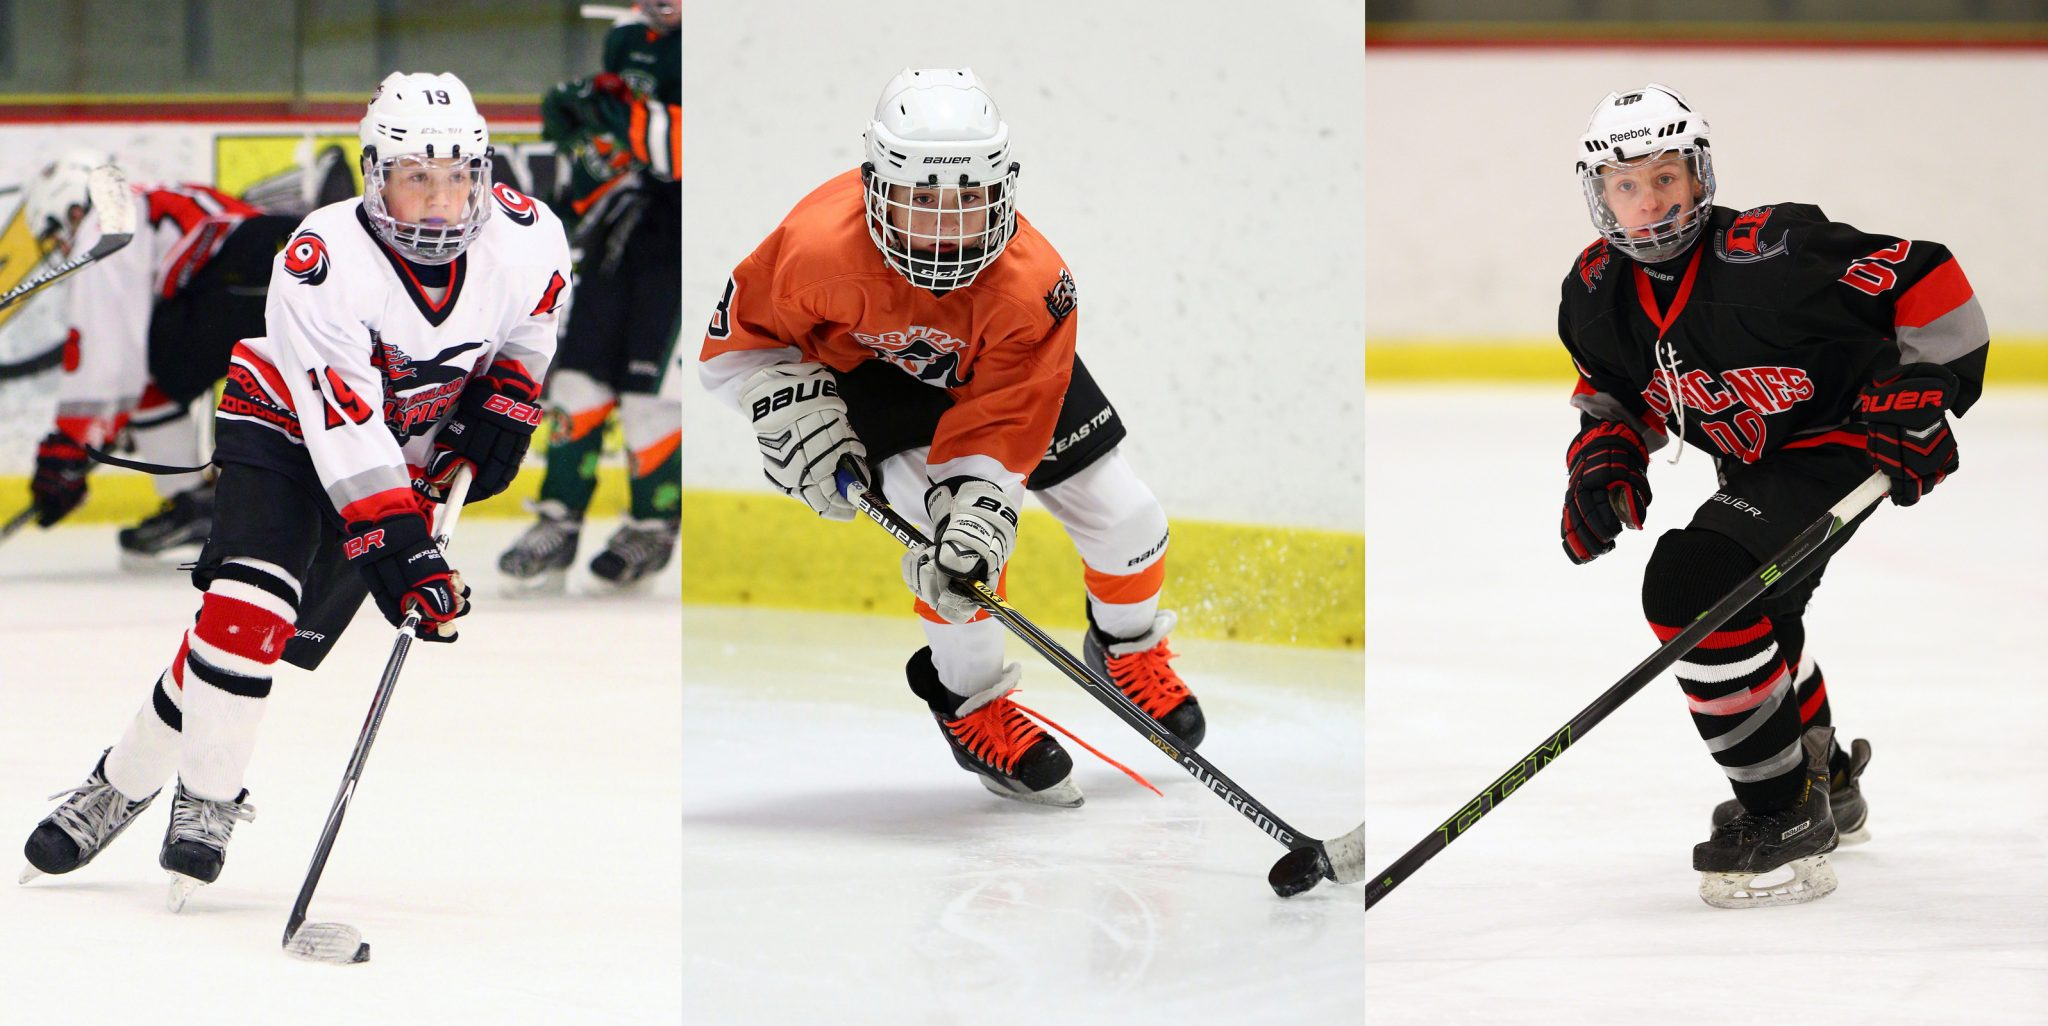 SilverPeak-Studios-Samples-Youth-Hockey-Action-Shots-Photography